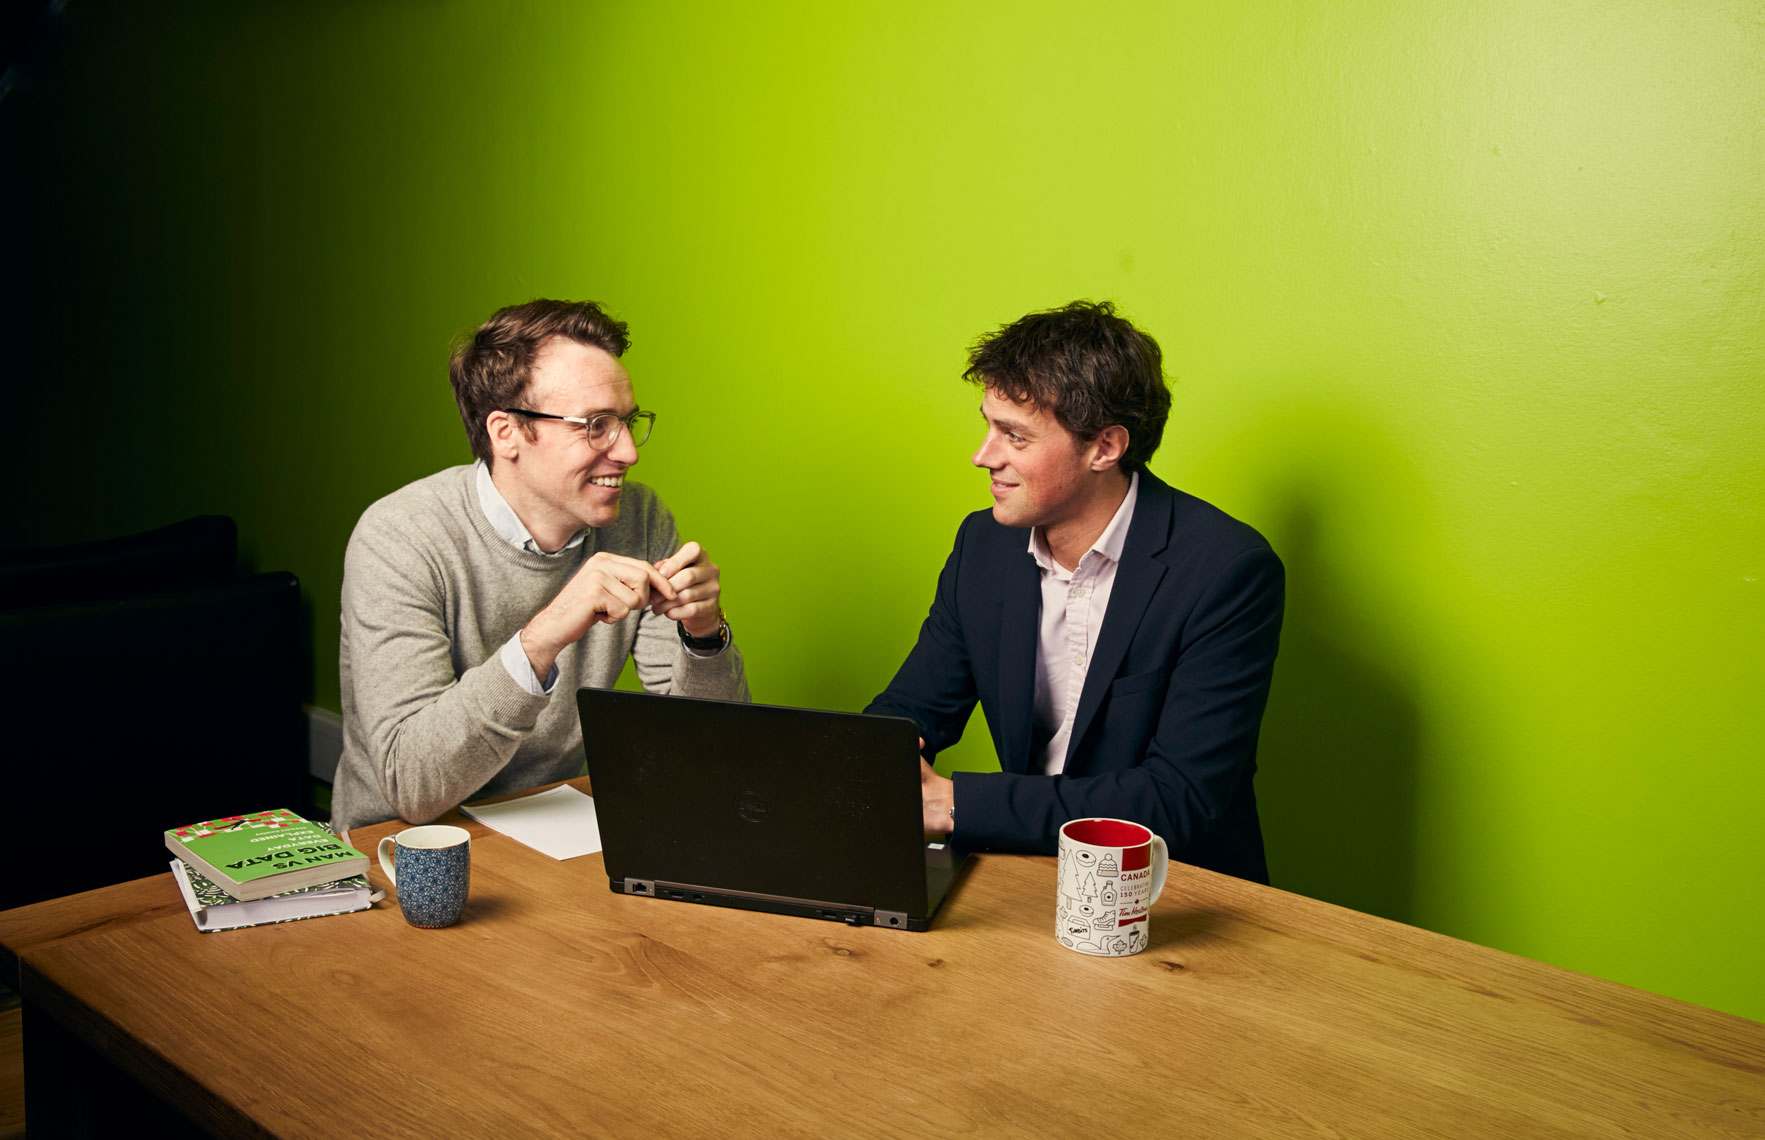 two businessmen chat at table with green backdrop